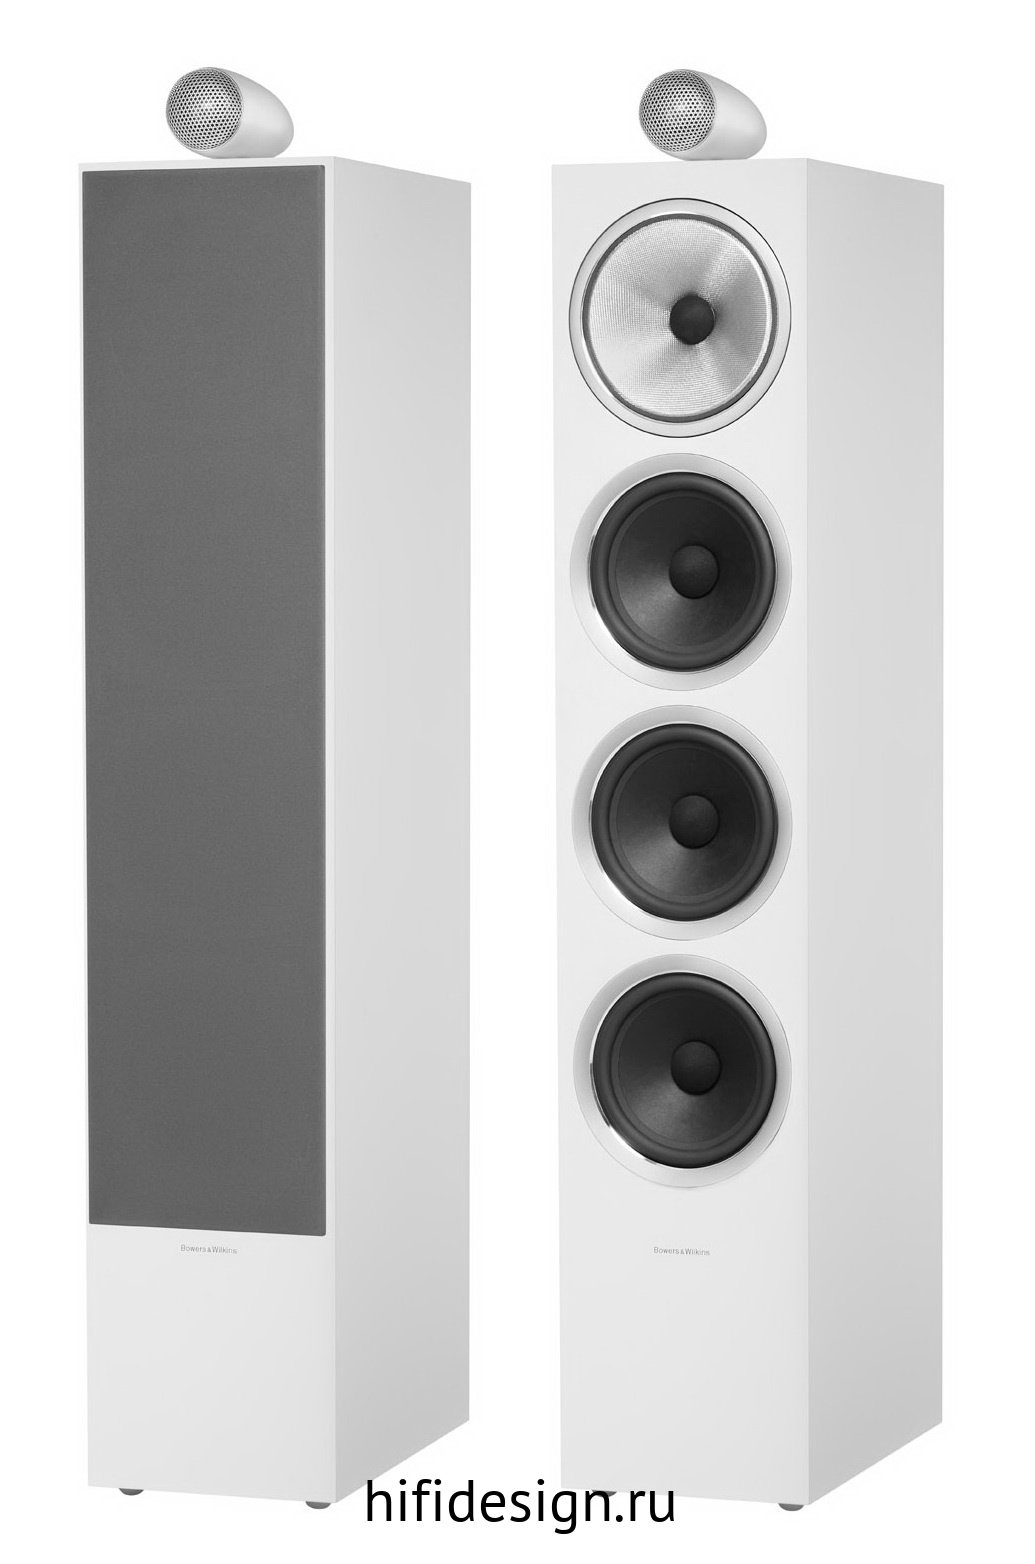 ГЉГіГЇГЁГІГј Bowers&Wilkins 702 S2 satin white